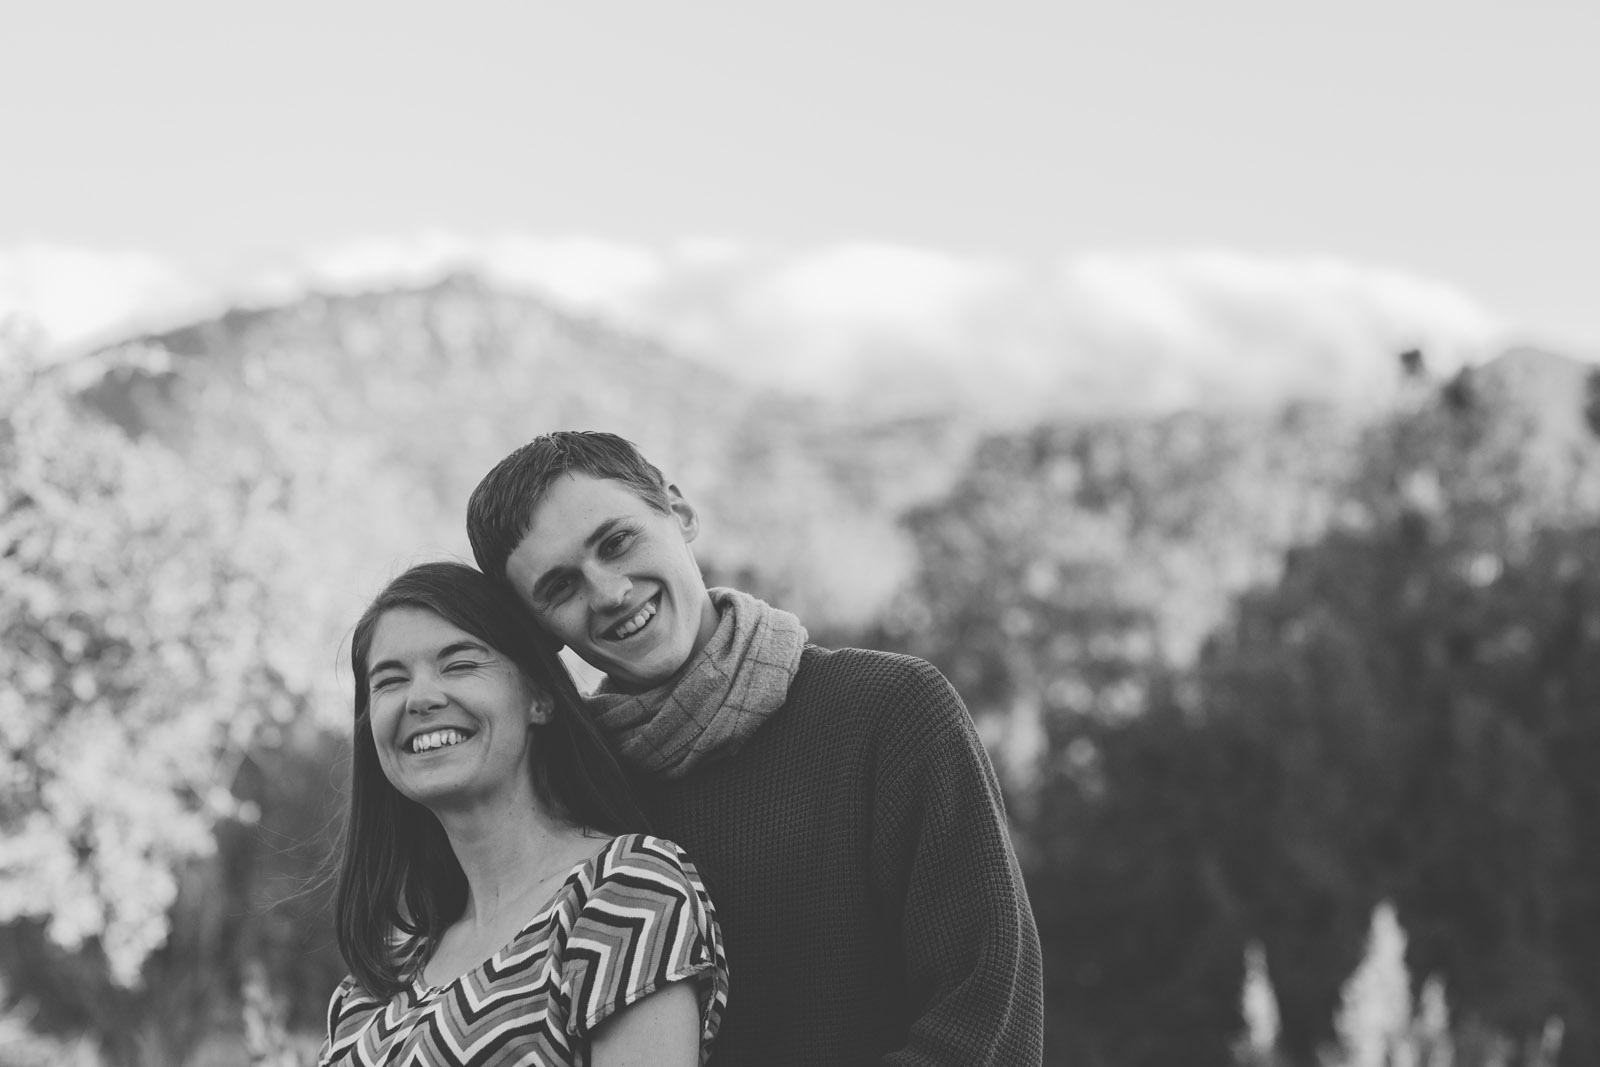 076-engagement-photographers-in-nm-farmington-and-albuquerque